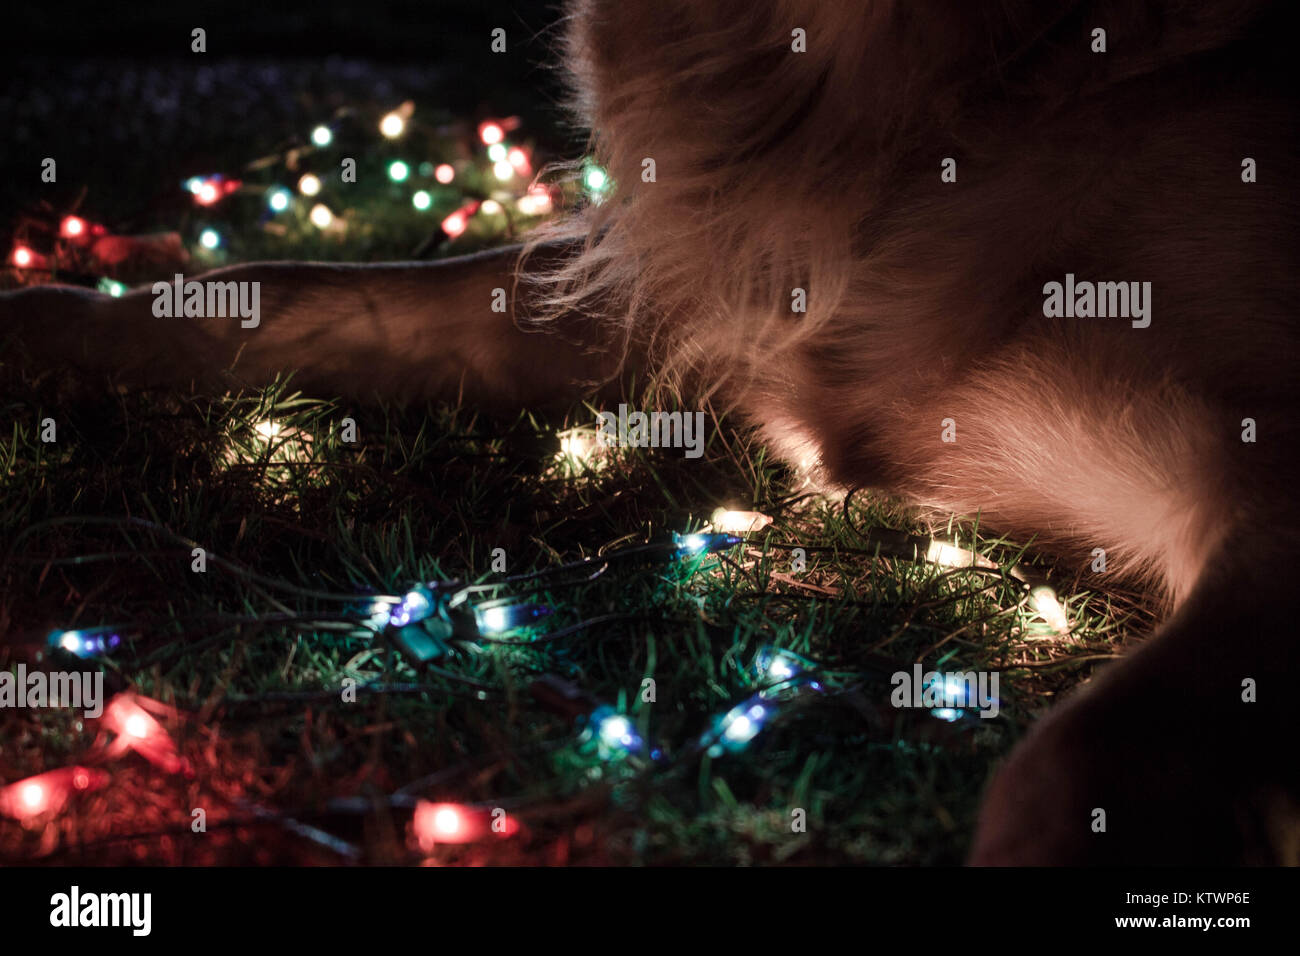 Tumblr Lights High Resolution Stock Photography And Images Alamy